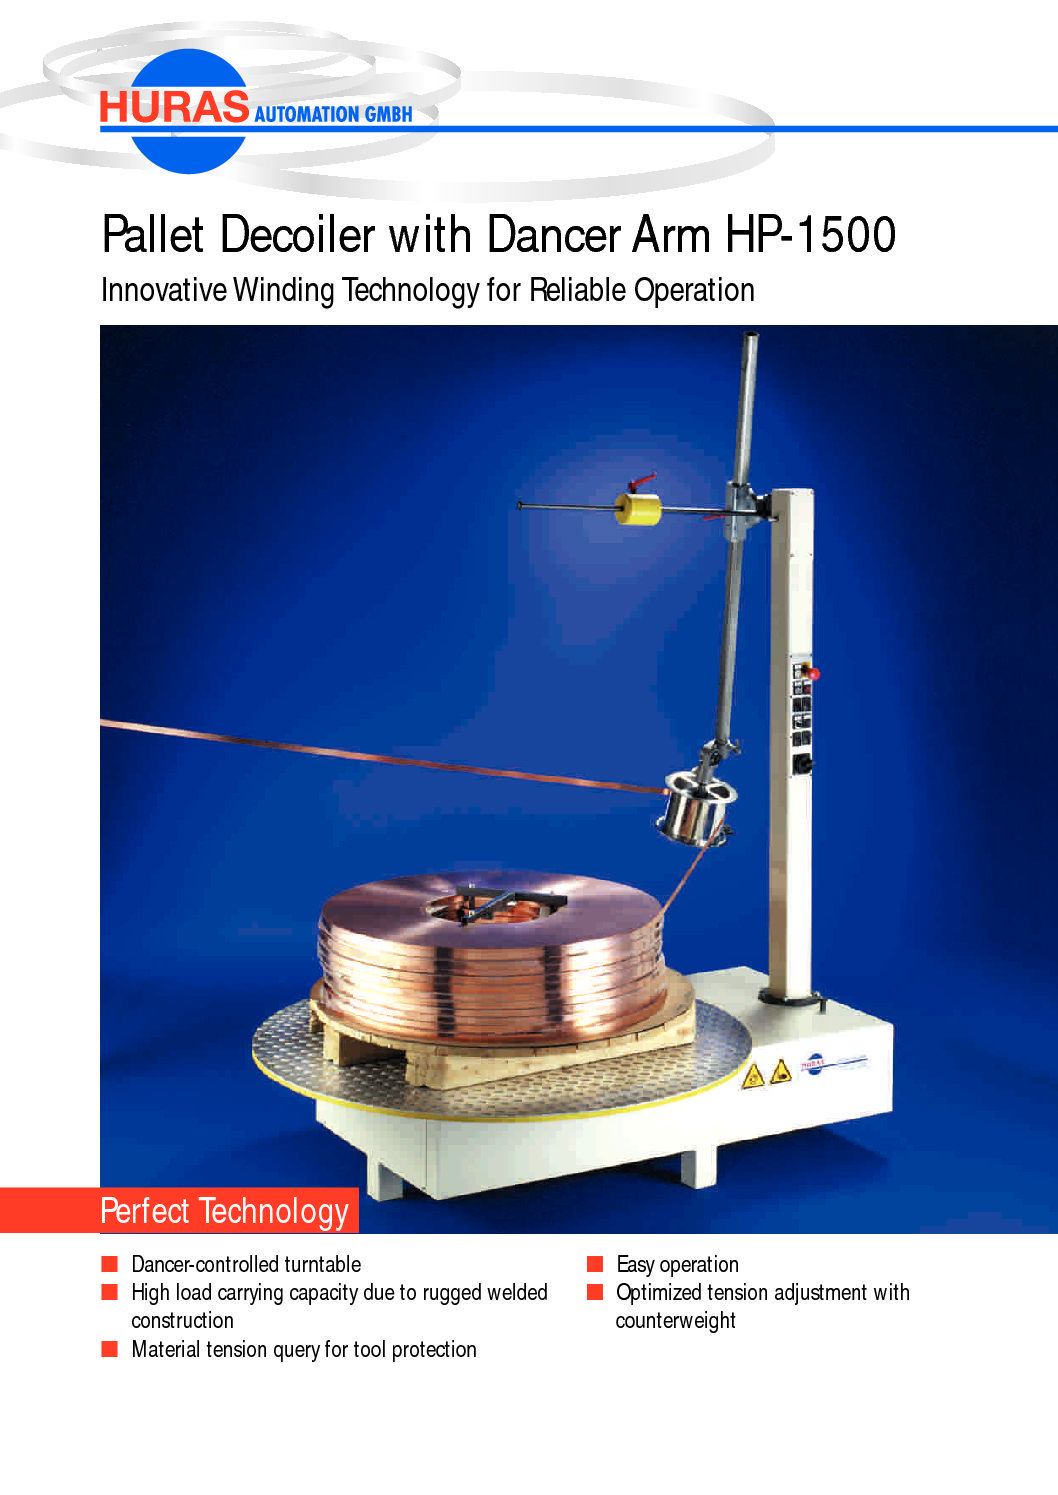 Pallet Decoiler with Dancer Arm HP-1500